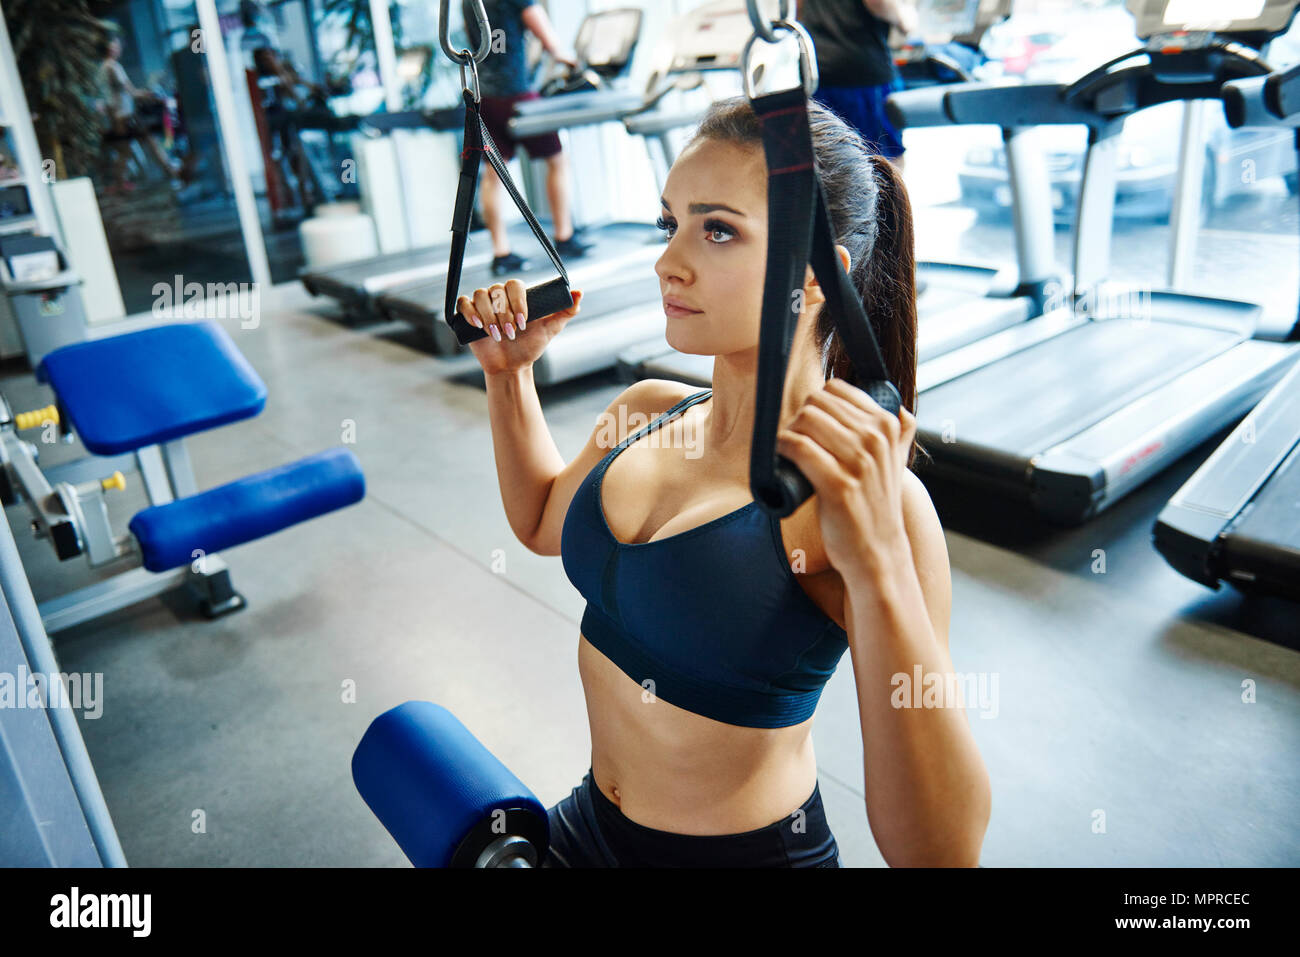 Woman training with exercise machine in the gym - Stock Image